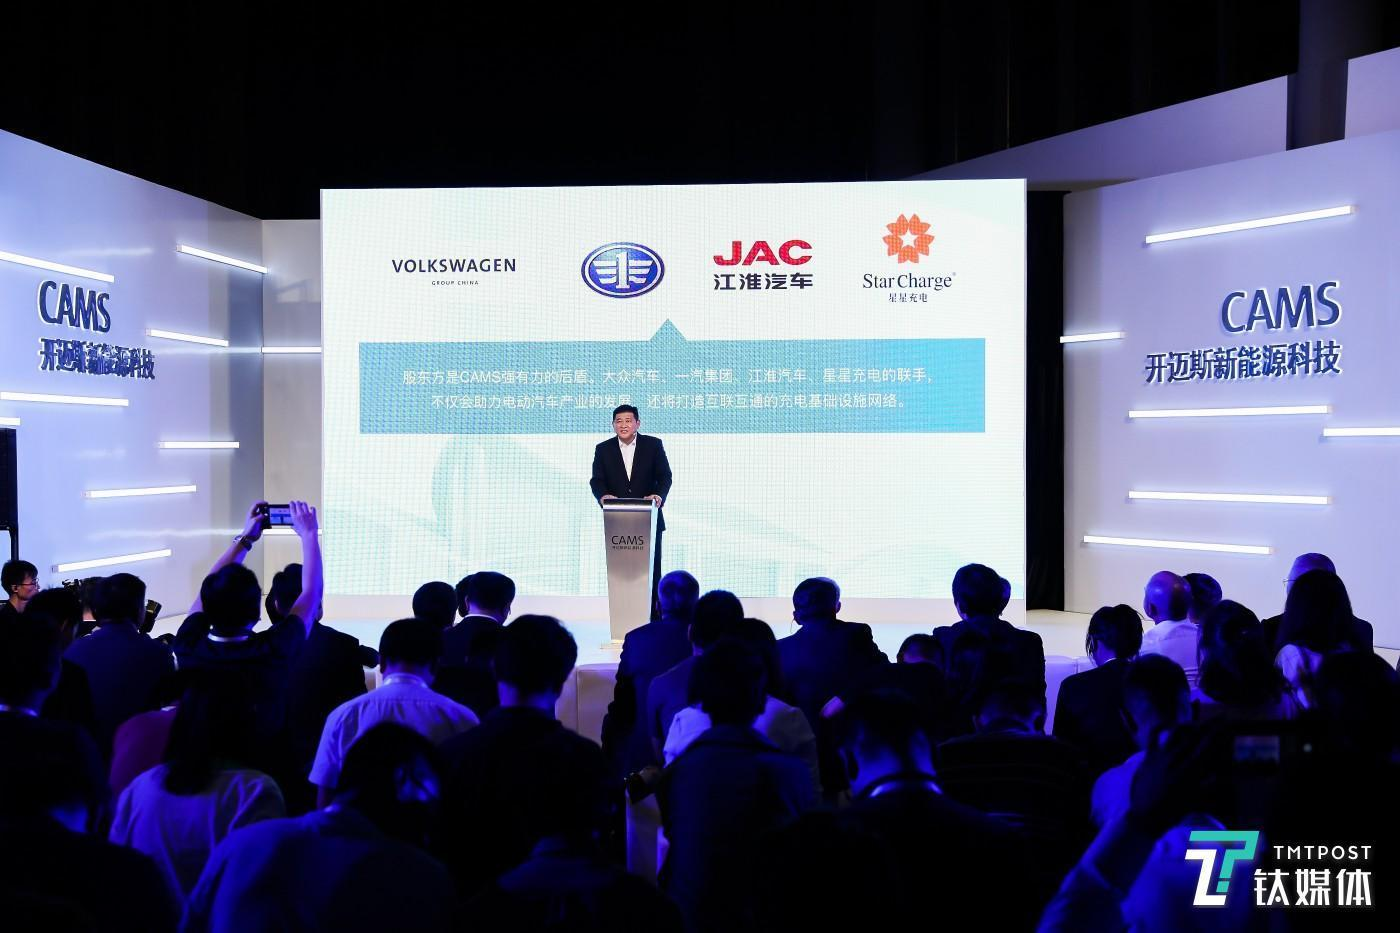 Volkswagen's Eco-Play in China: what will be its next step after completing the charging module?